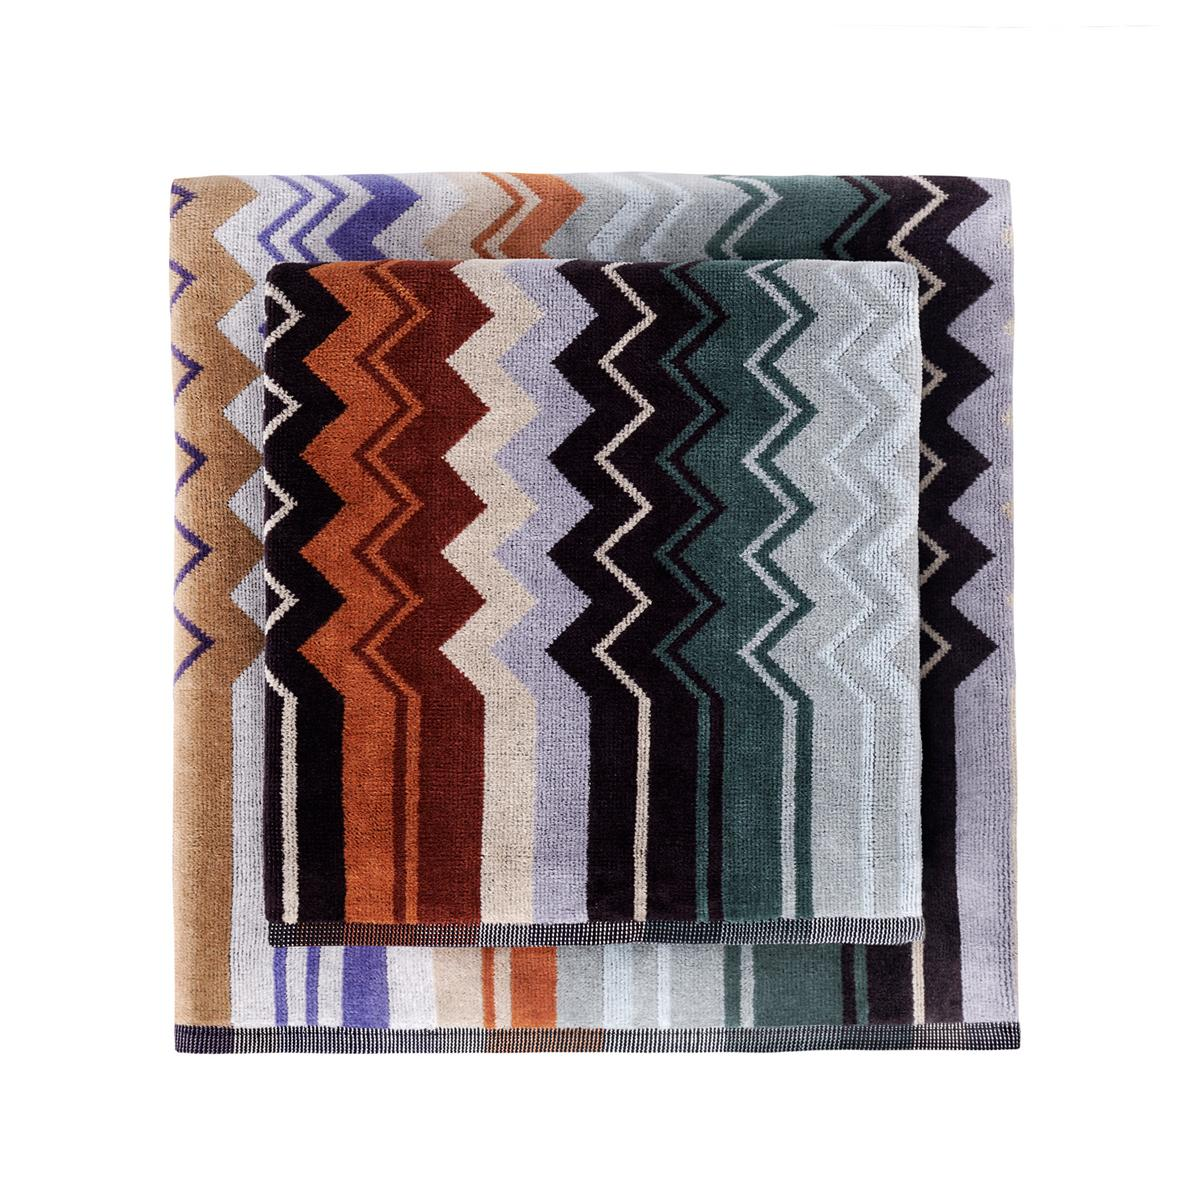 missoni home giacomo terry towels. Black Bedroom Furniture Sets. Home Design Ideas